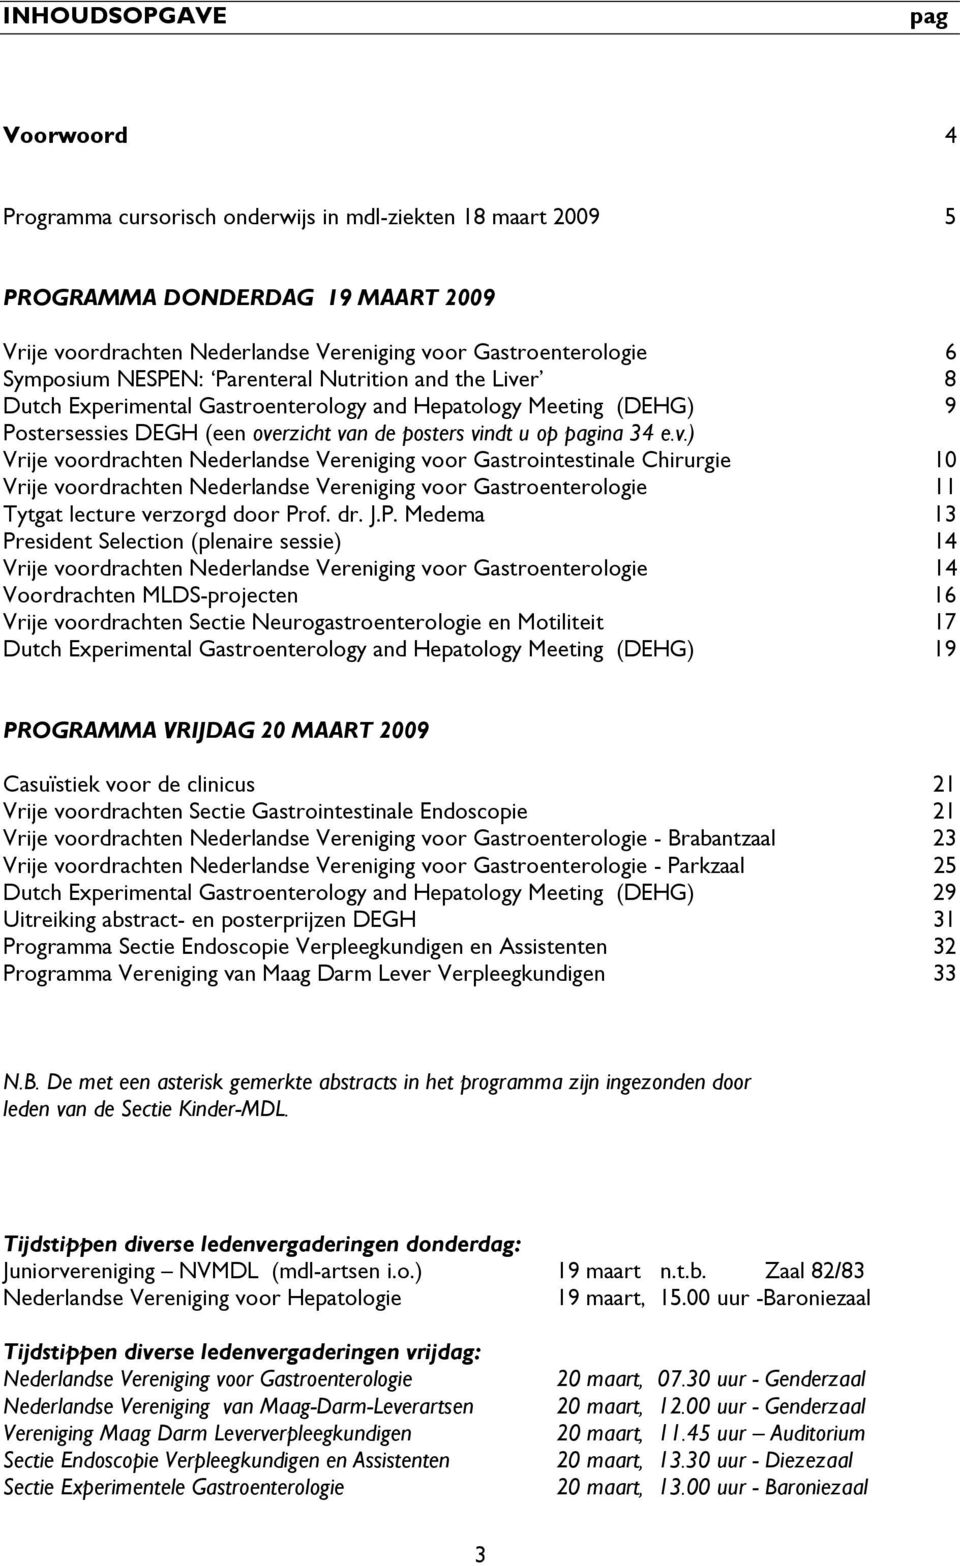 r 8 Dutch Experimental Gastroenterology and Hepatology Meeting (DEHG) 9 Postersessies DEGH (een ove